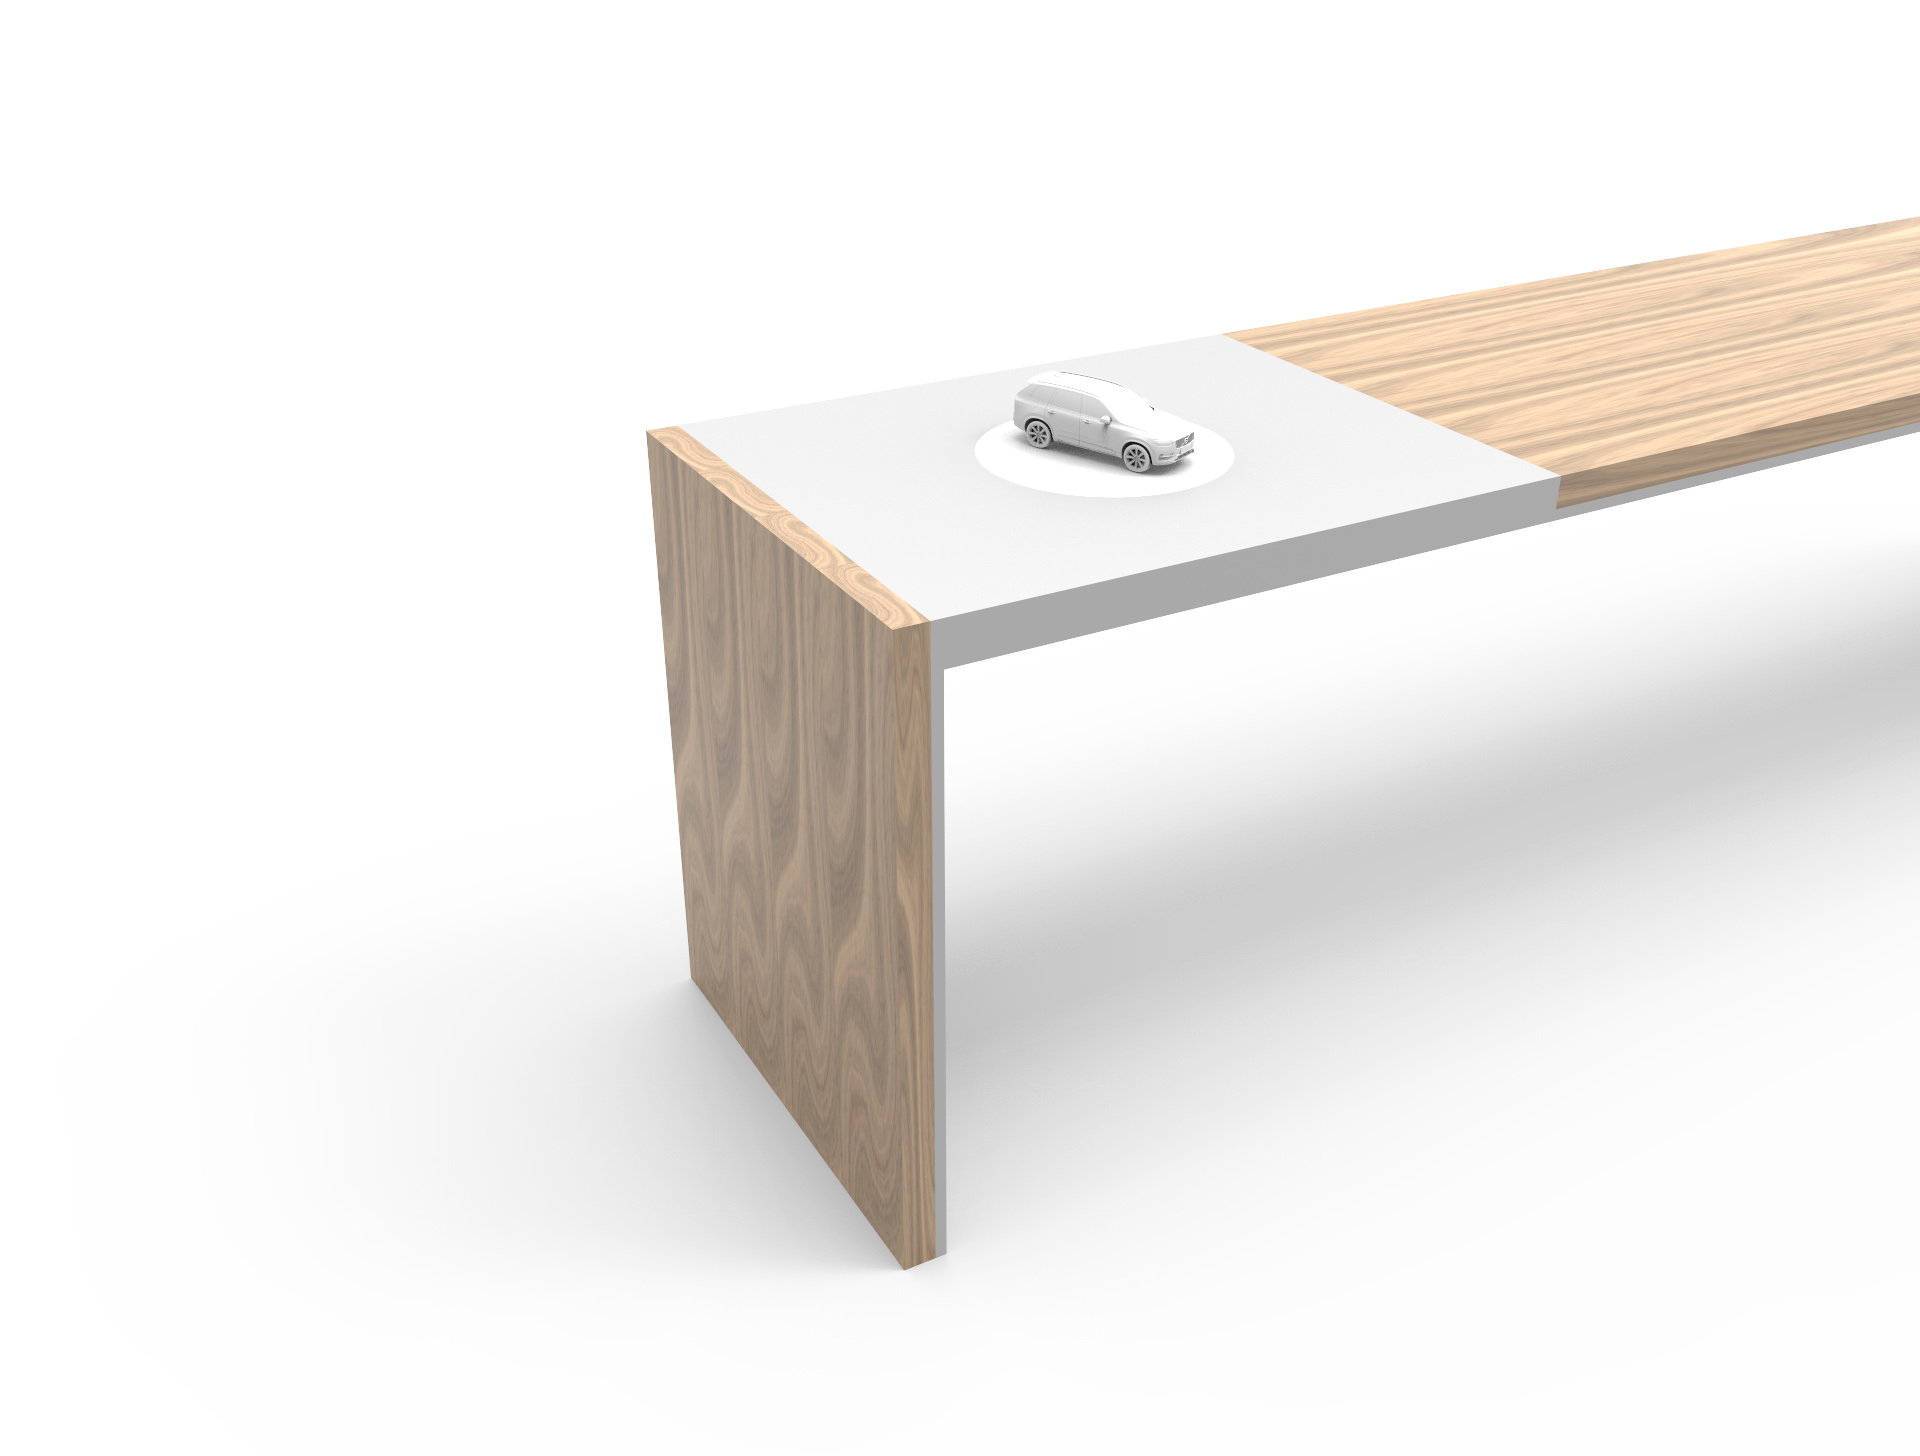 Scale model turn table